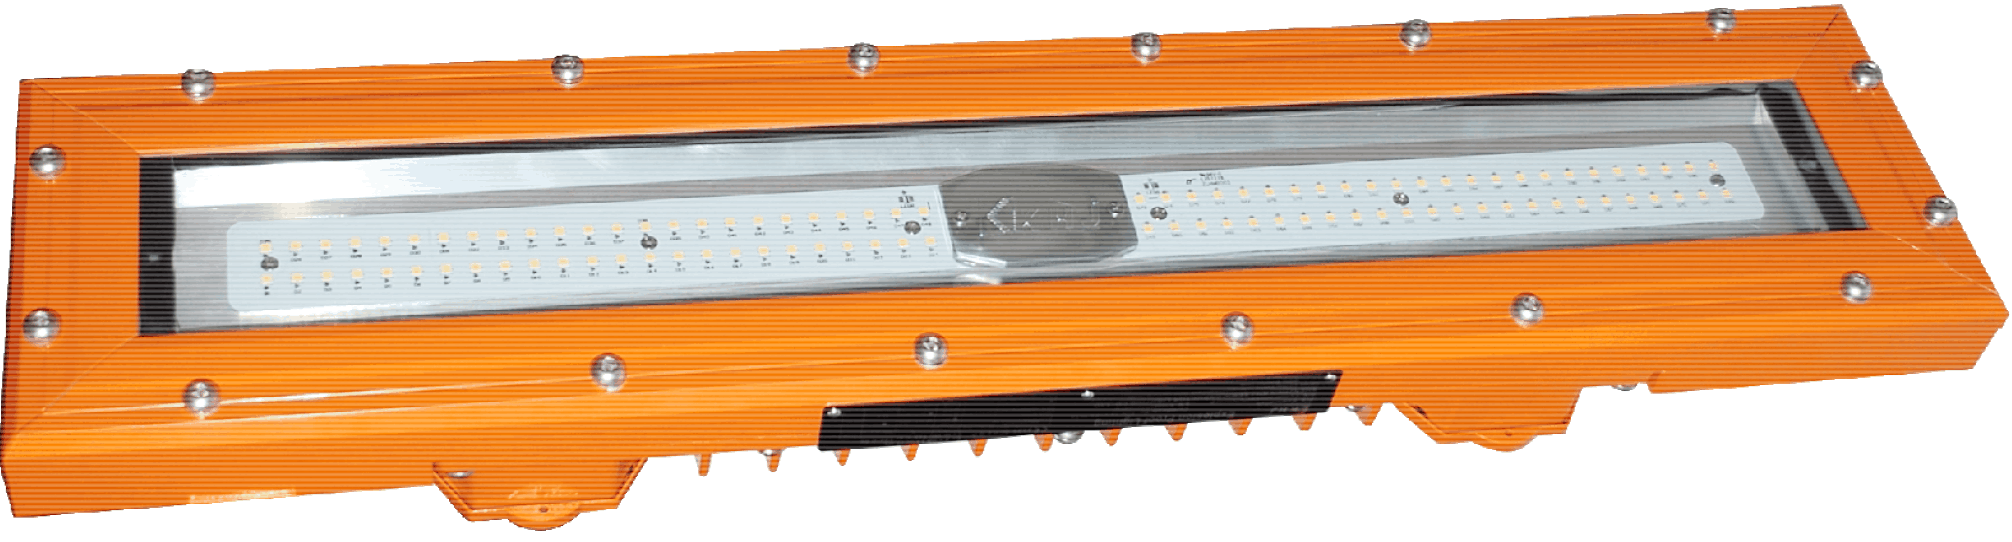 Ex-KSF18600 ATEX LED Lighting Swordfish 18W